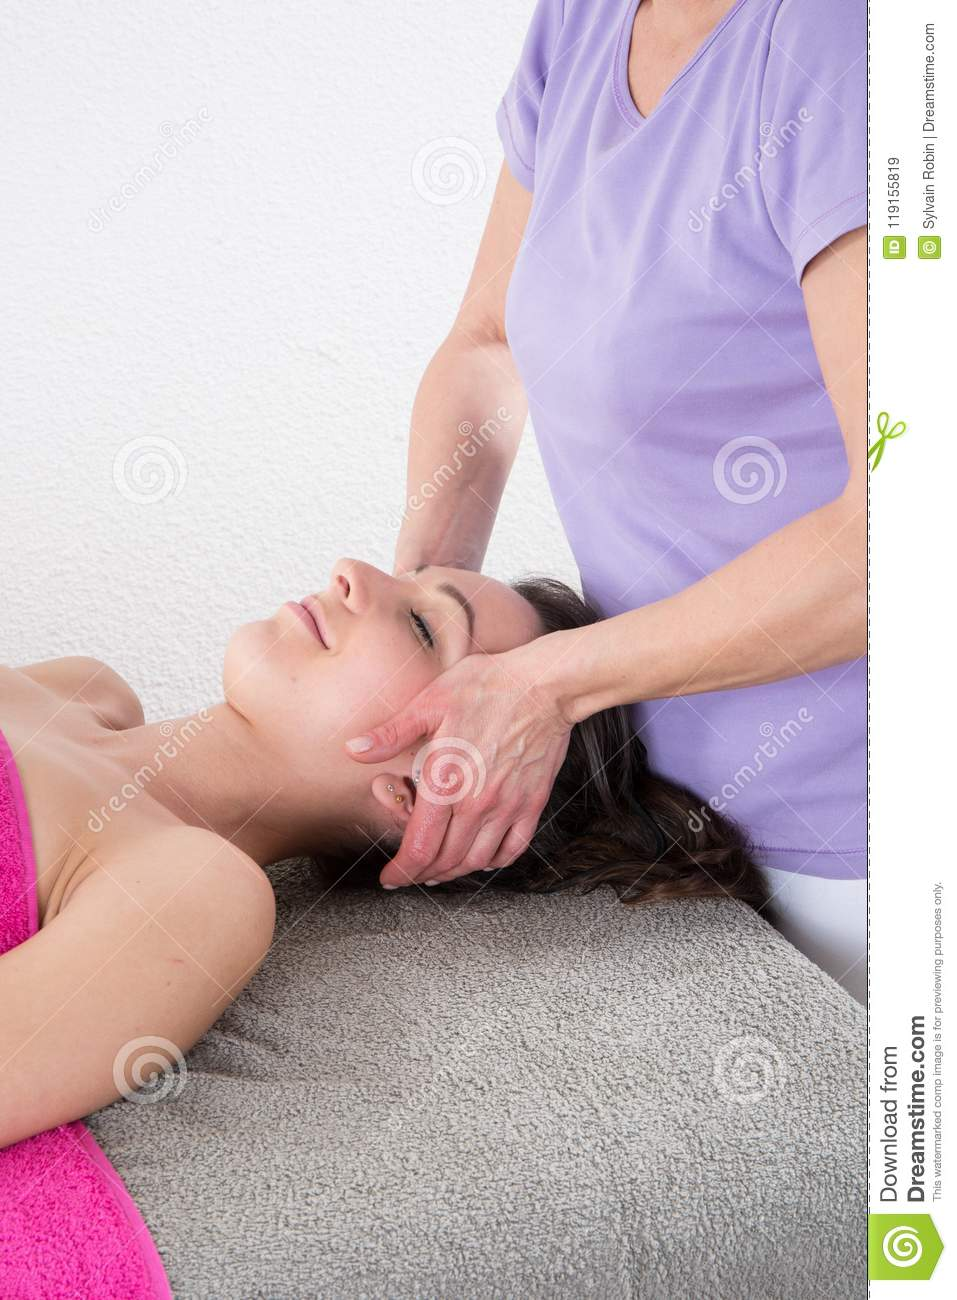 Healing Treatment Head Massage By Reiki Healing Treatment In Relaxation And